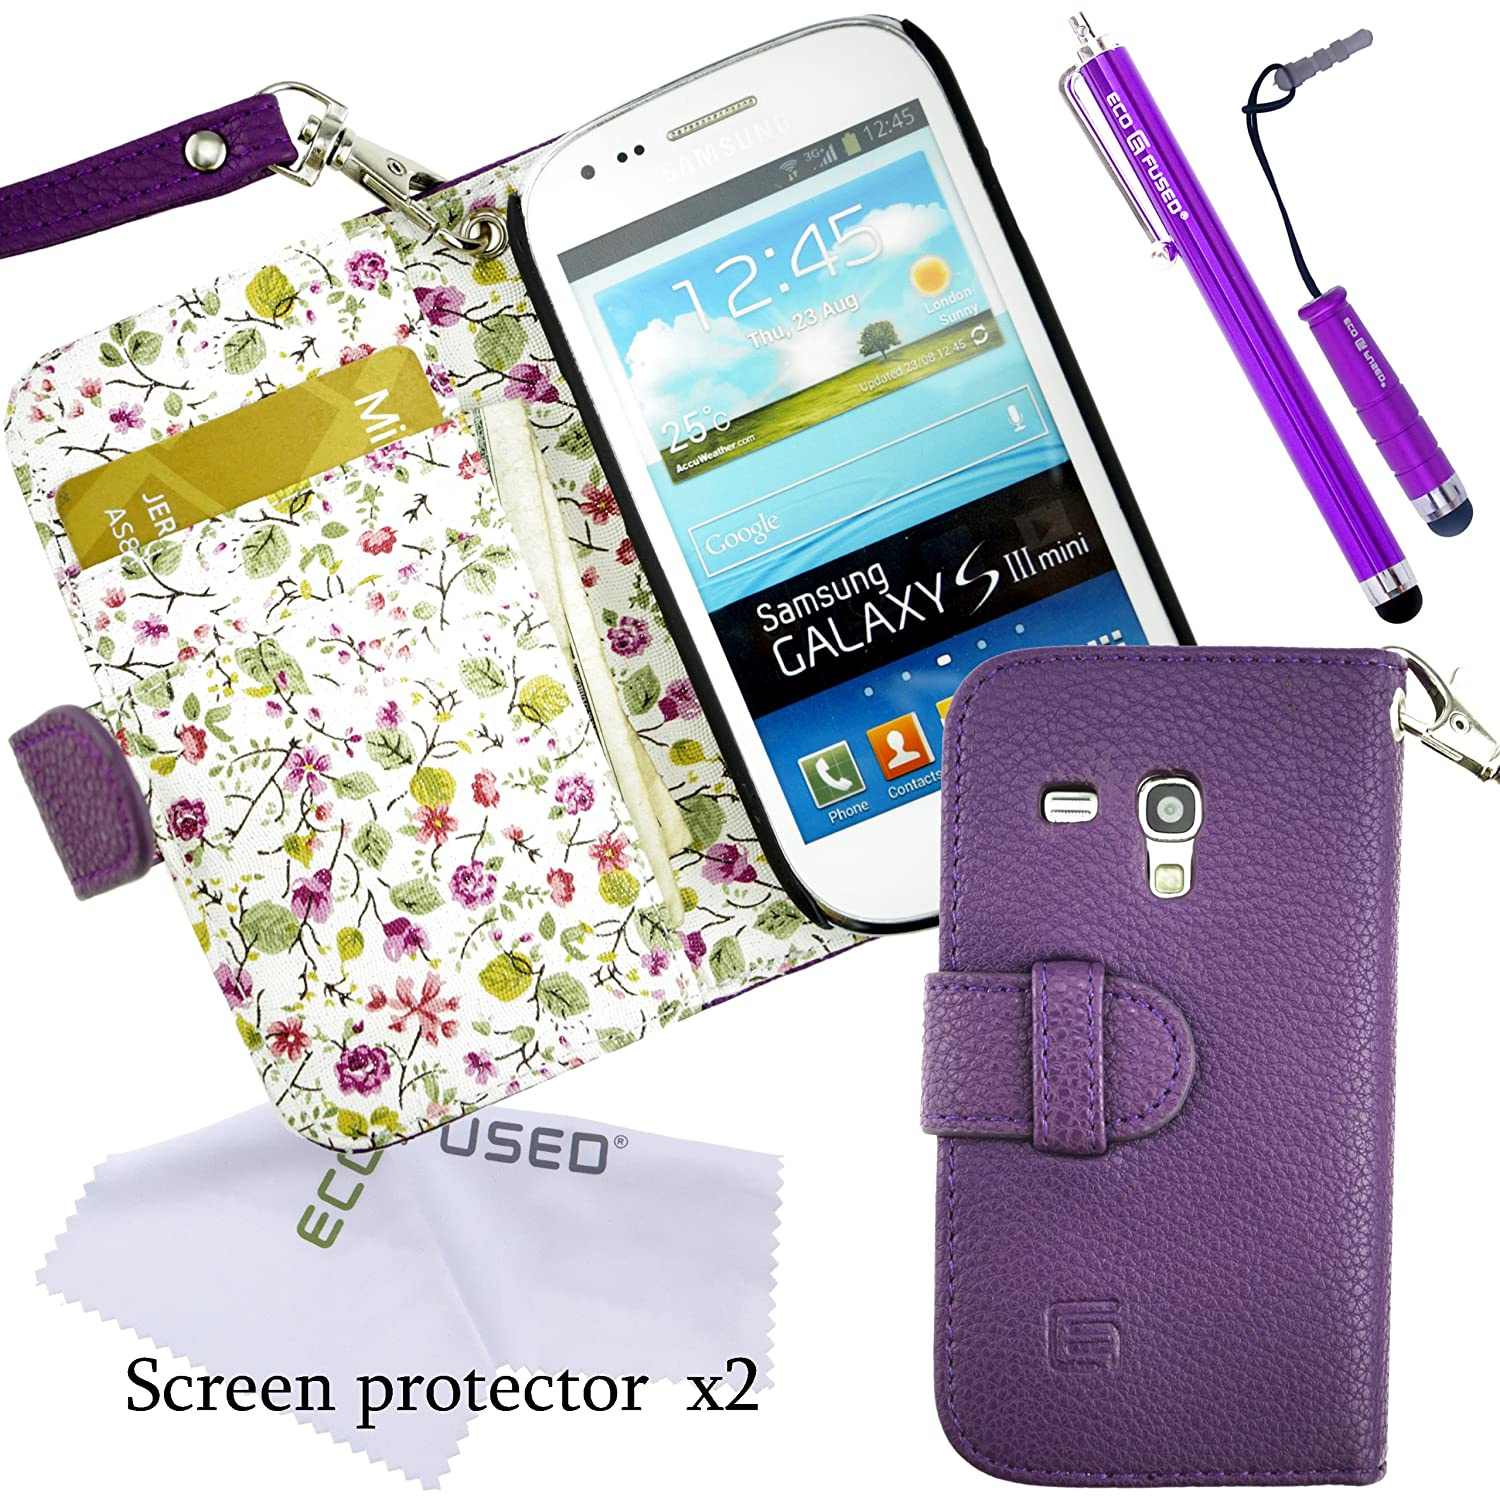 Samsung Galaxy S3 Mini Case Bundle including 1 Faux Leather Cover with Floral Interior for Samsung Galaxy S3 Mini I8190 / 1 Lanyard / 2 Stylus Pens / 2 Screen Protectors / 1 ECO-FUSED Microfiber Cleaning Cloth (Purple)